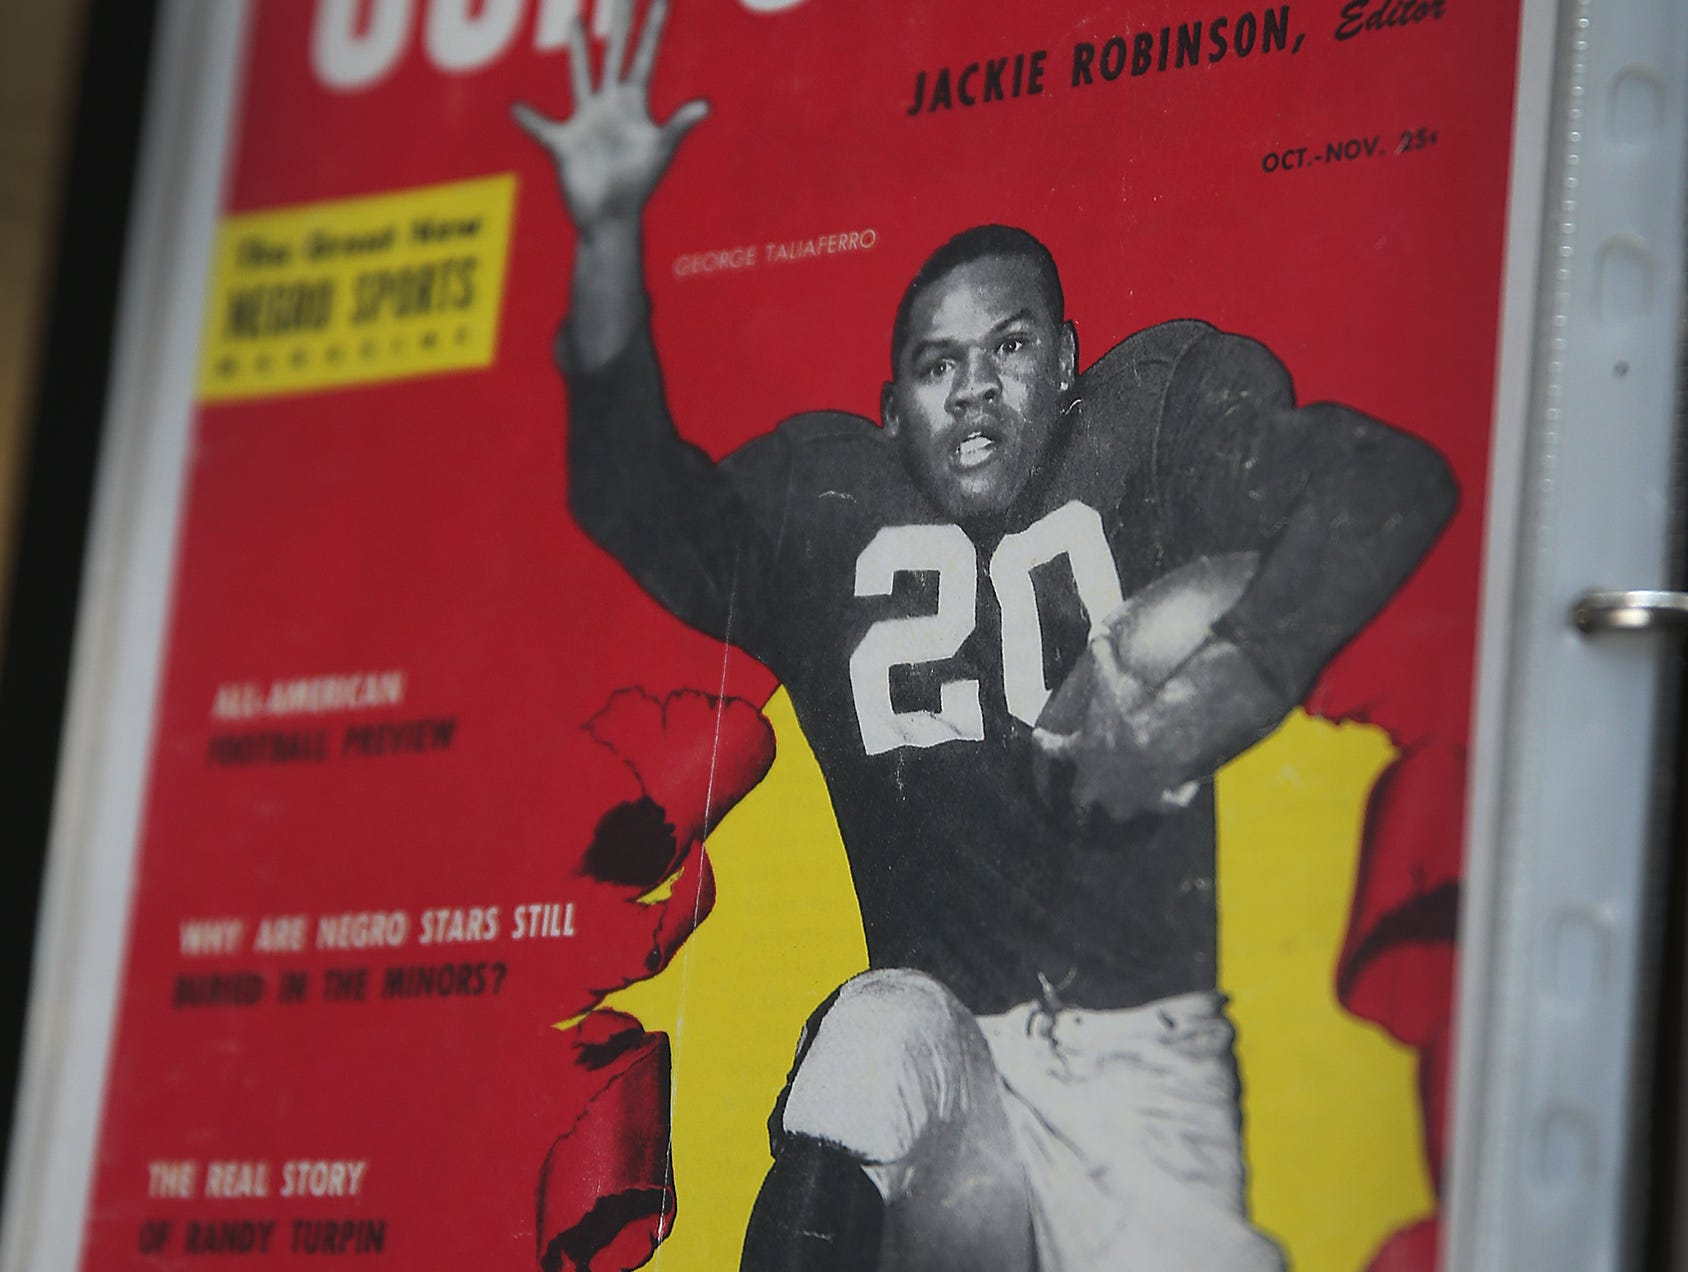 George Taliaferro, 91, former IU football star, was the first African-American drafted by an NFL team. Here Taliaferro on the cover of Our Sports magazine.